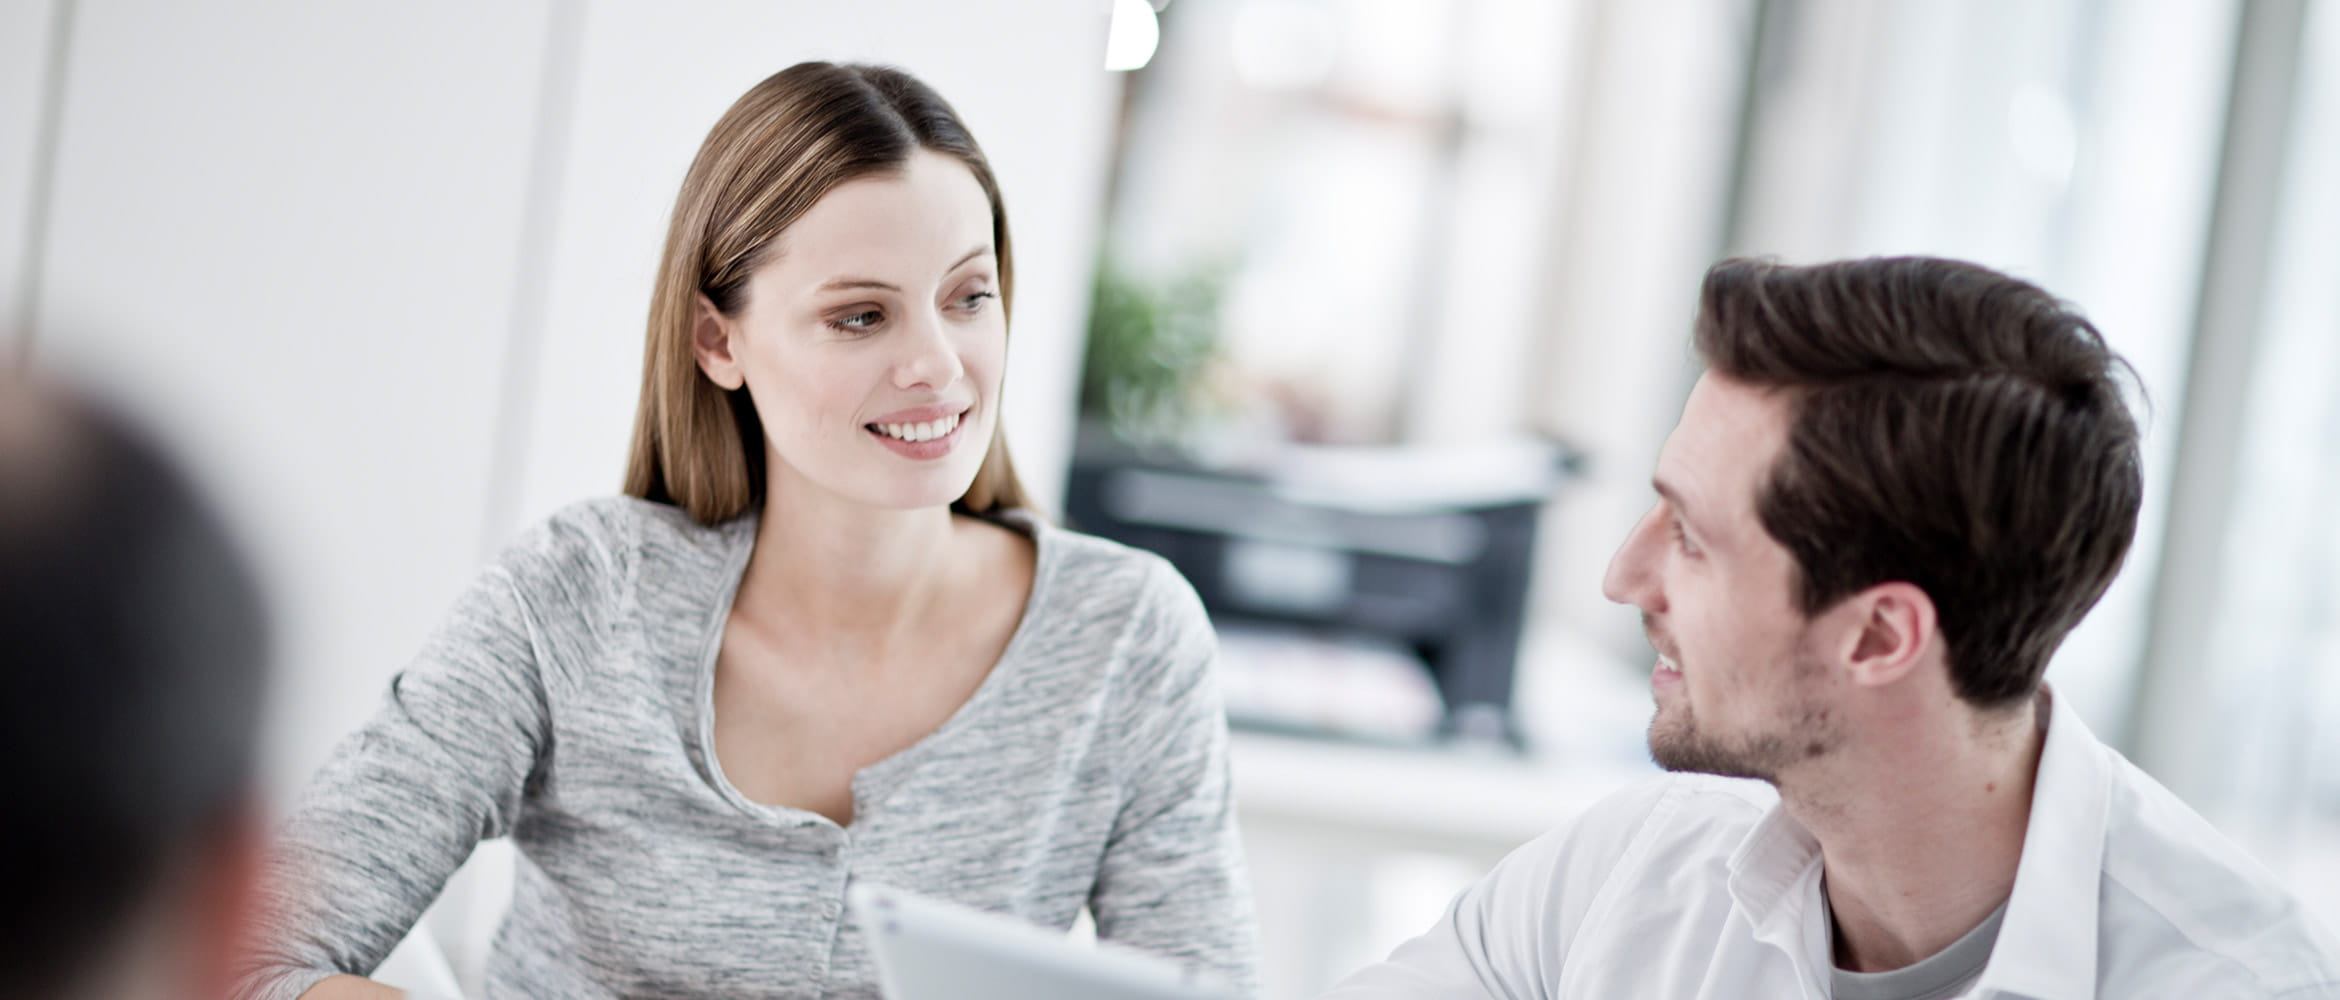 Man and women in front of laptop are smiling, printer in the background